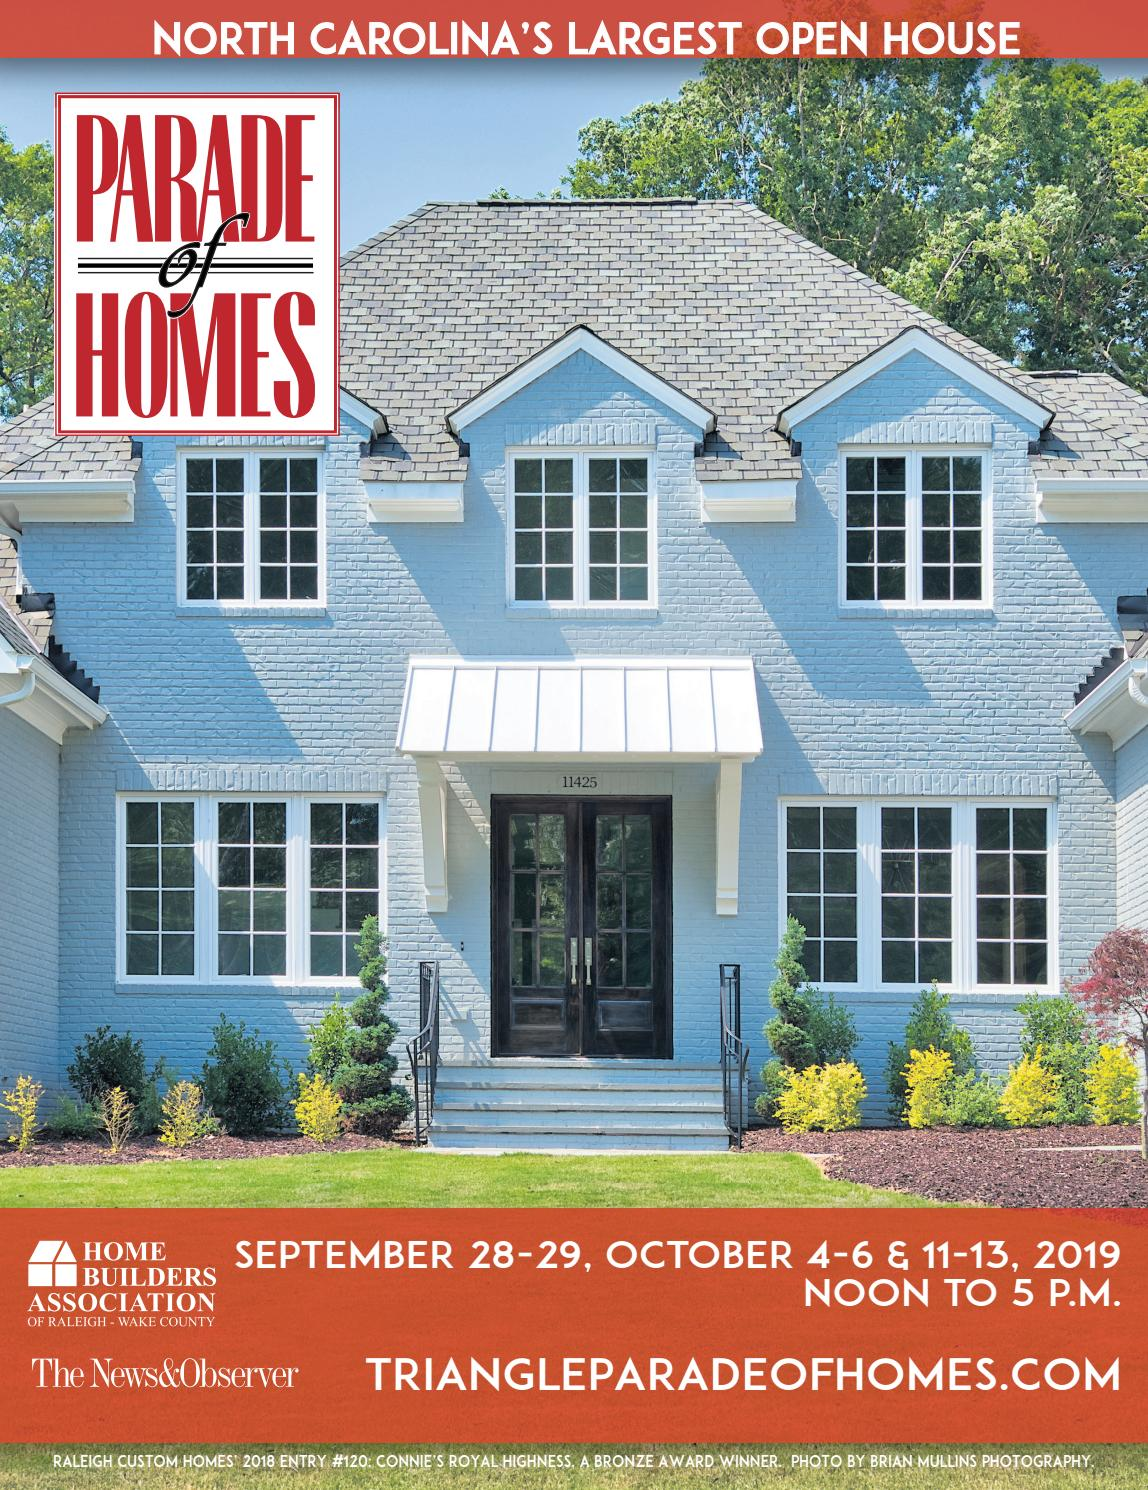 2019 Parade of Homes - North Carolina's Largest Open House ... on